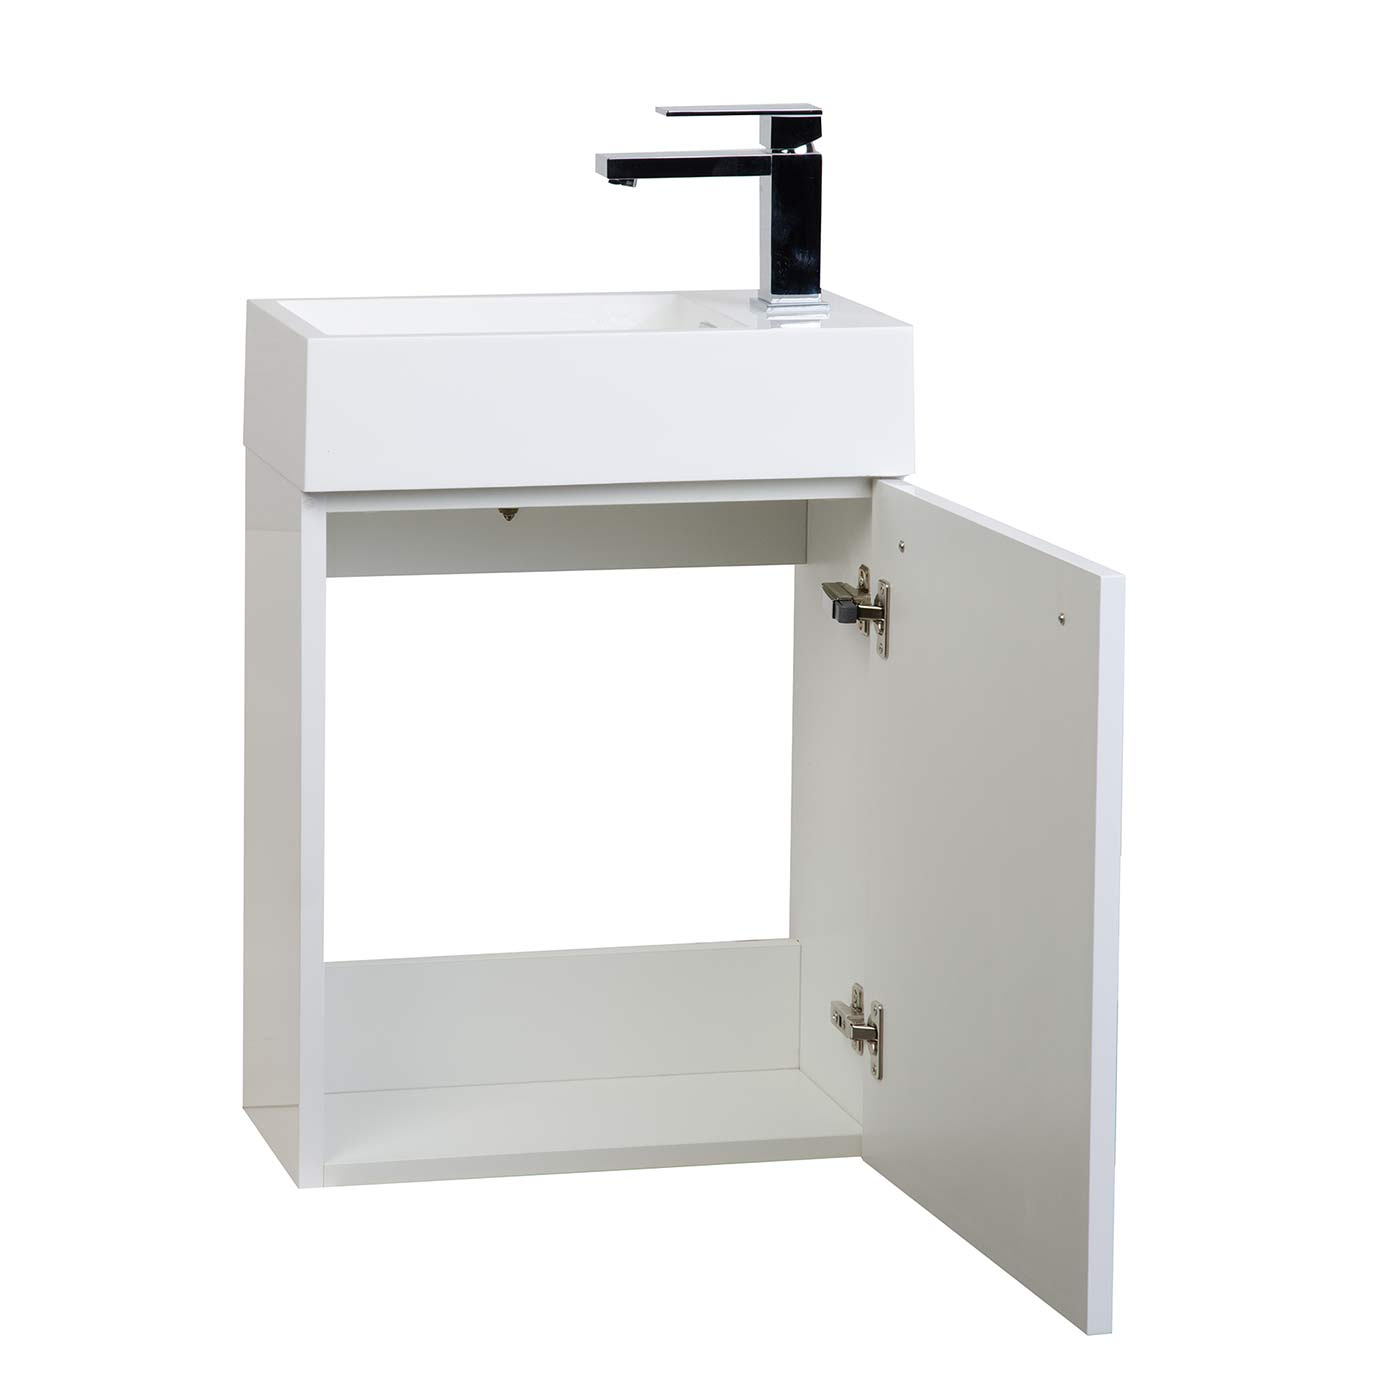 Buy 18 Inch Bathroom Vanity Set Glossy White TNT460HGW